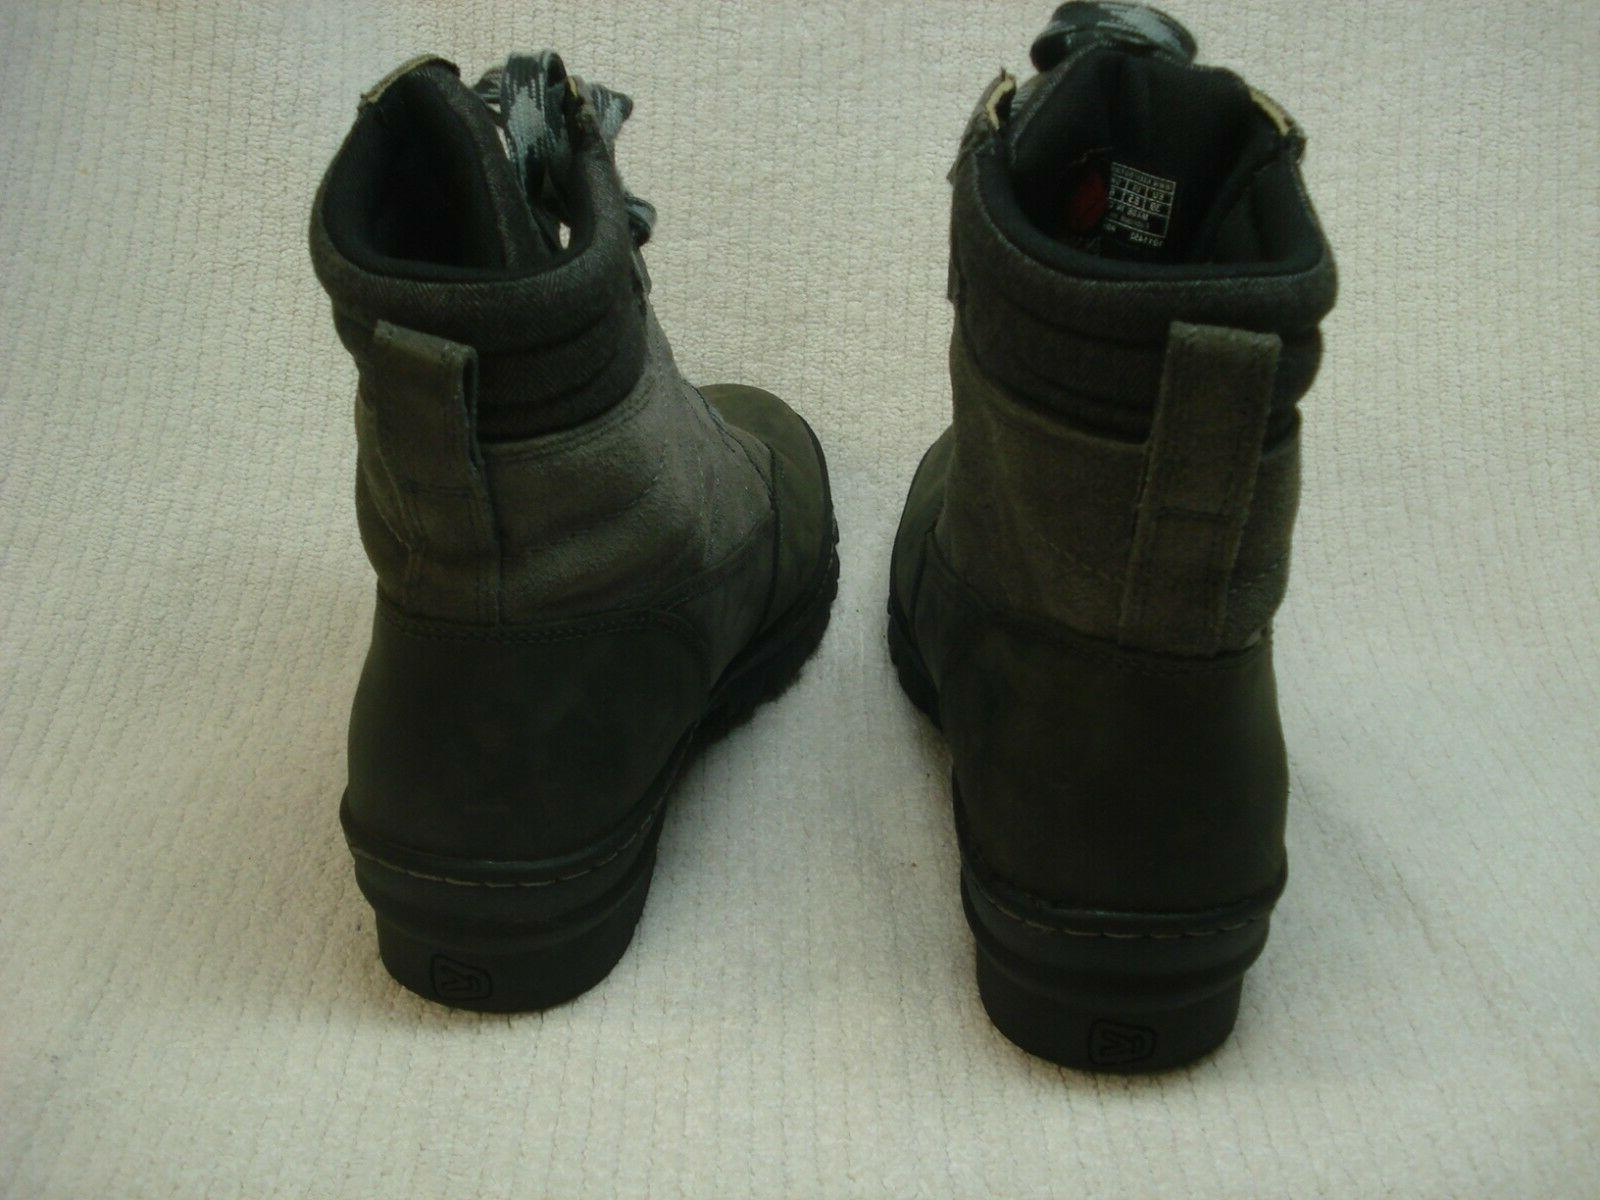 Women's waterproof insulated winter boots size 8.5